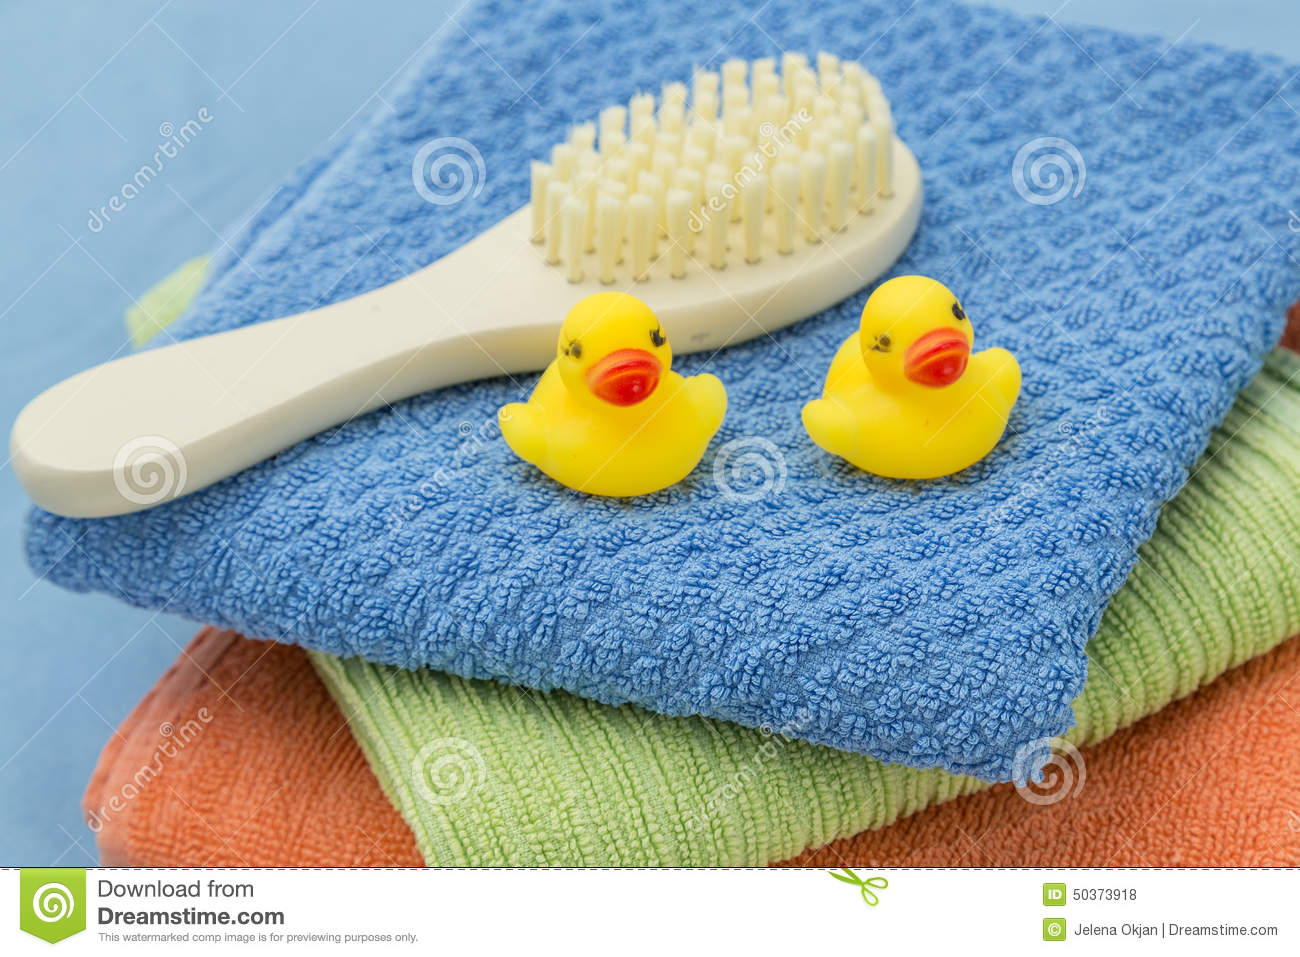 Baby bath accessories stock photo. Image of juvenile - 50373918